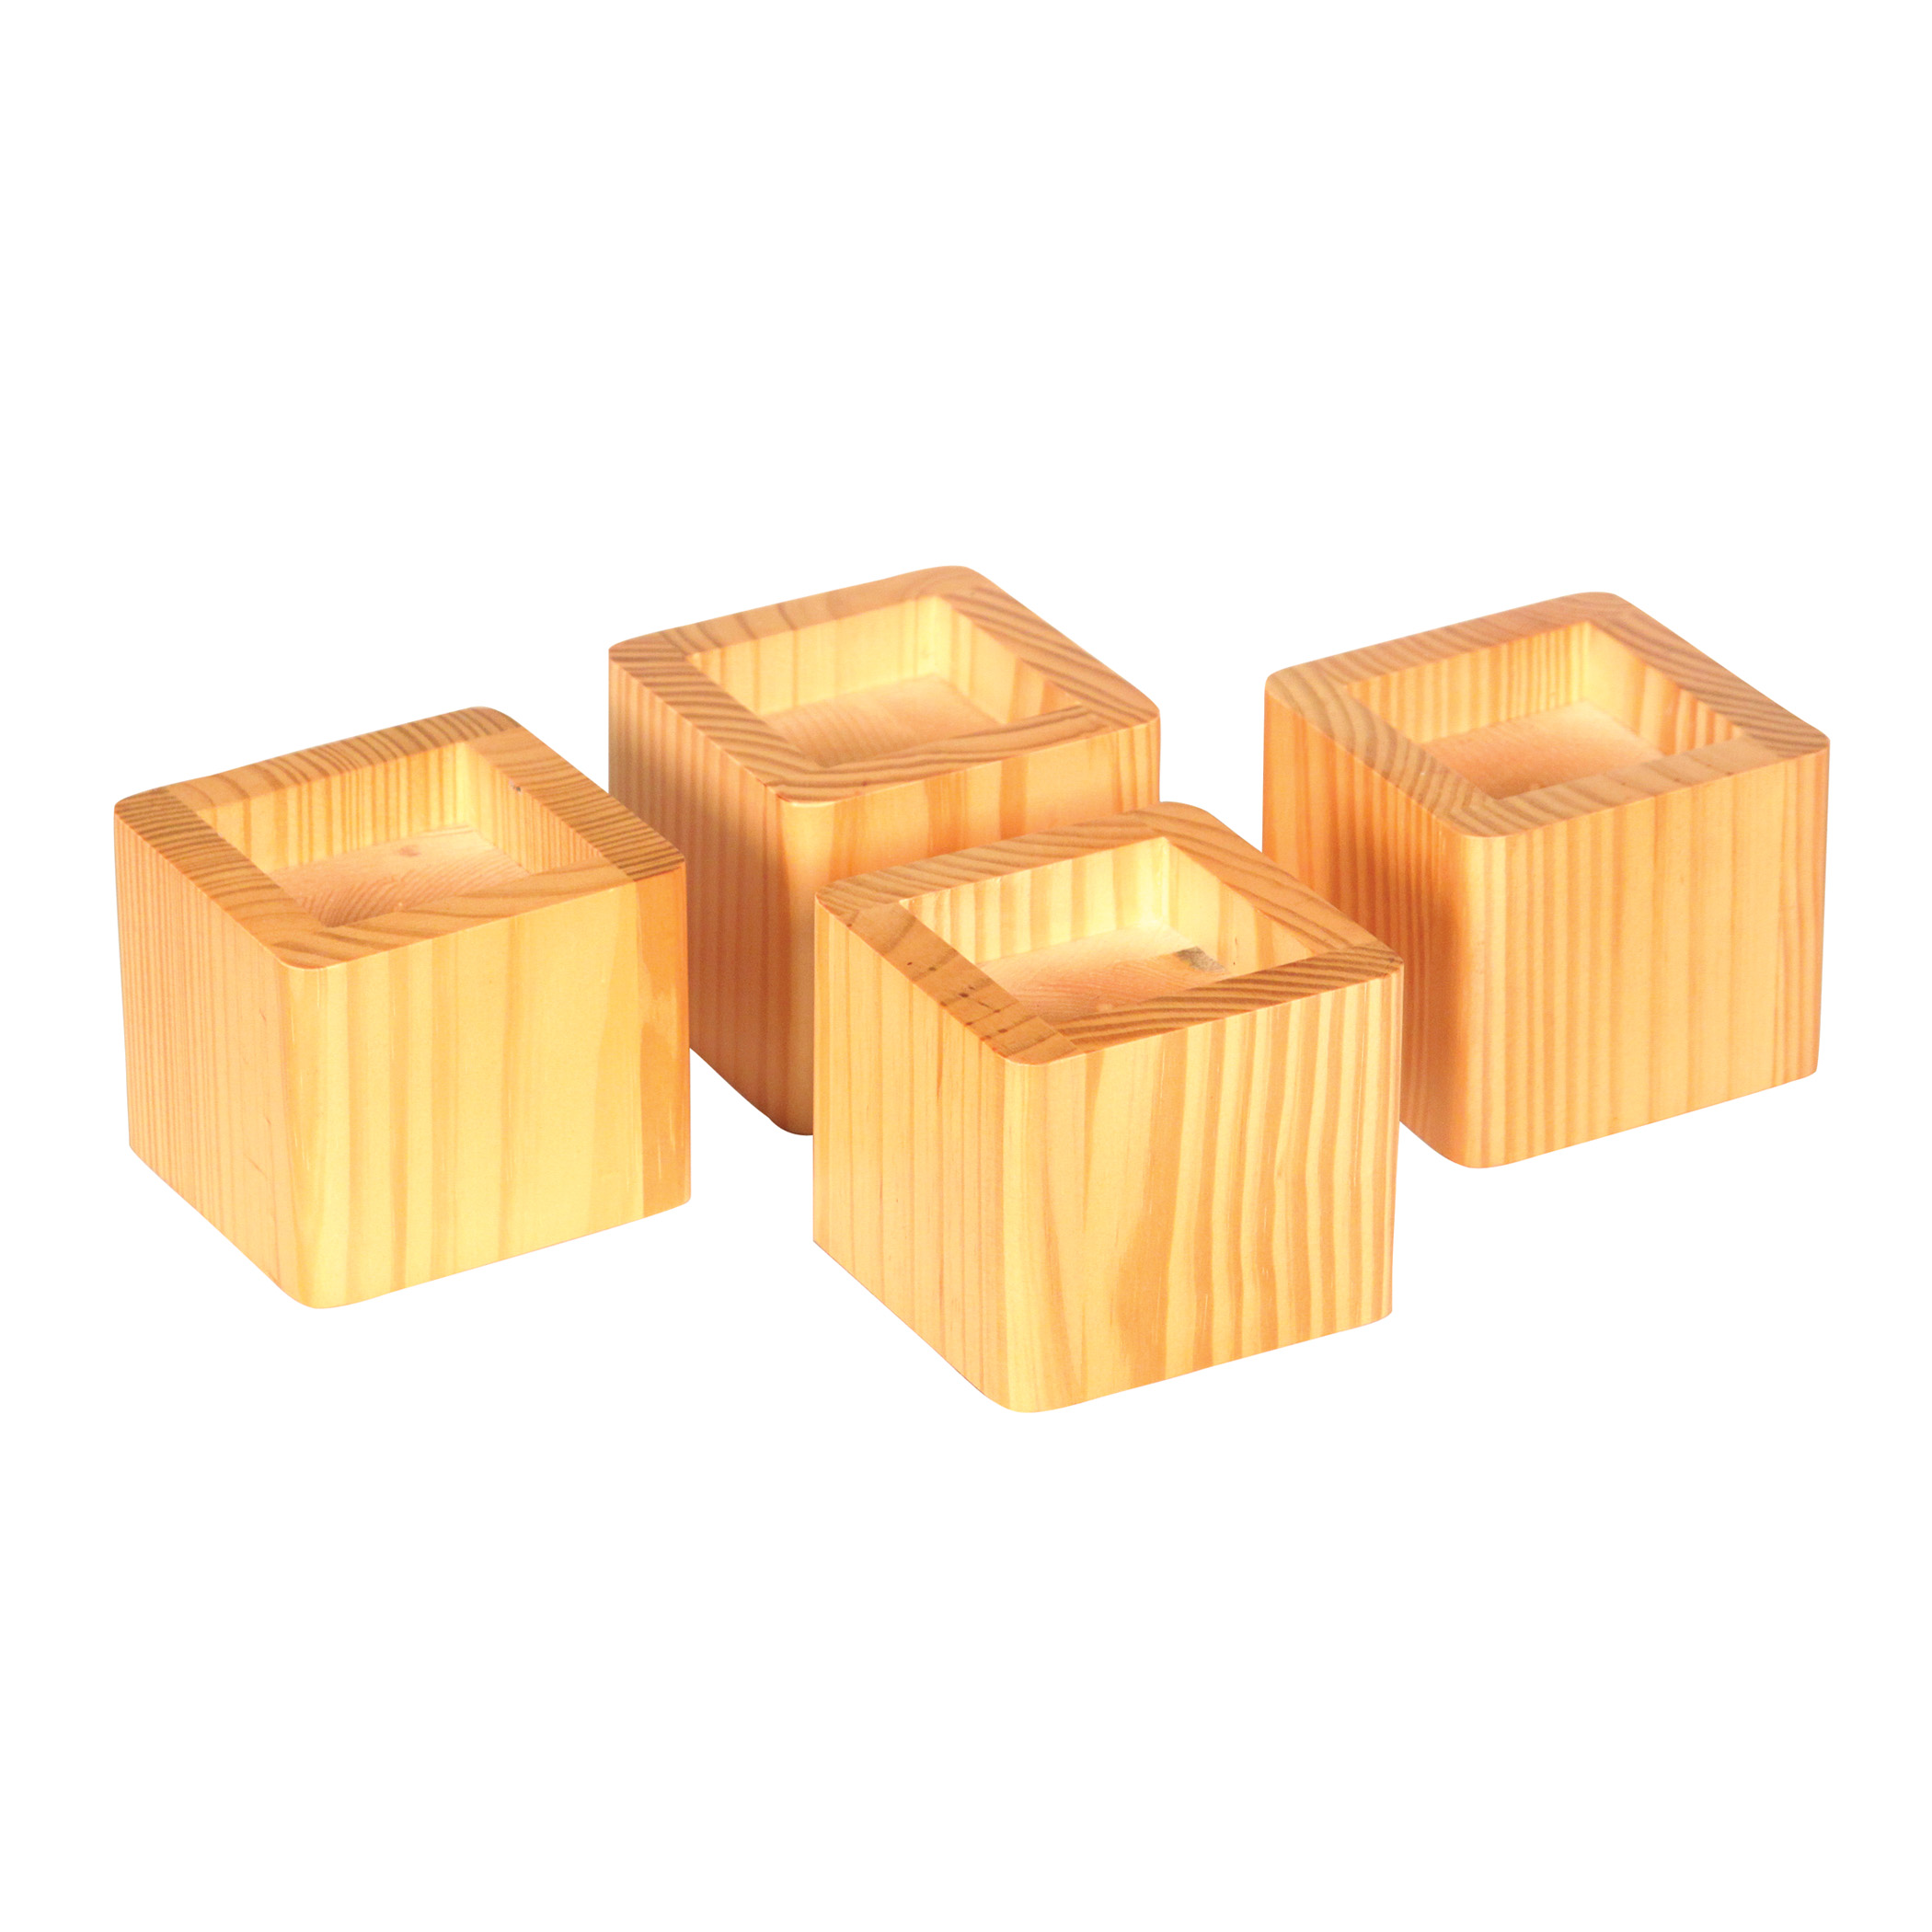 Set of 4 Bed Risers - HoneyItem #6080-4 - Stackable with the purchase of two complete sets to hold a bed weight of up to 500 lbs. Raises the bed up to 6.25